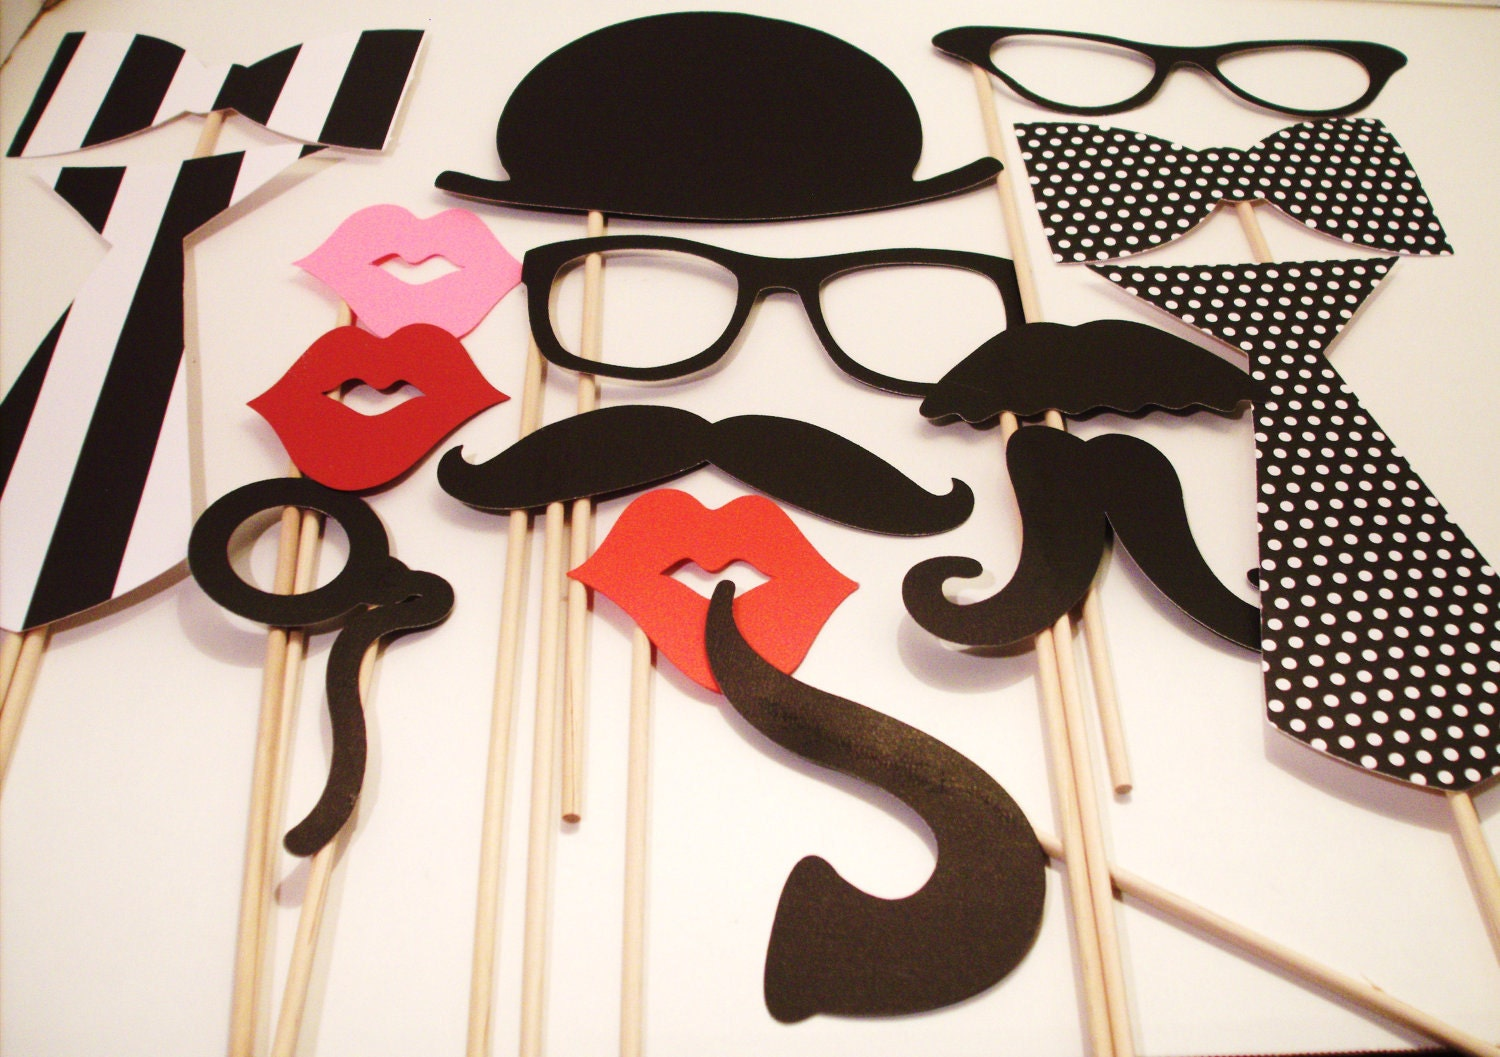 photo booth props wedding photo booth photo by ittybittywedding. Black Bedroom Furniture Sets. Home Design Ideas